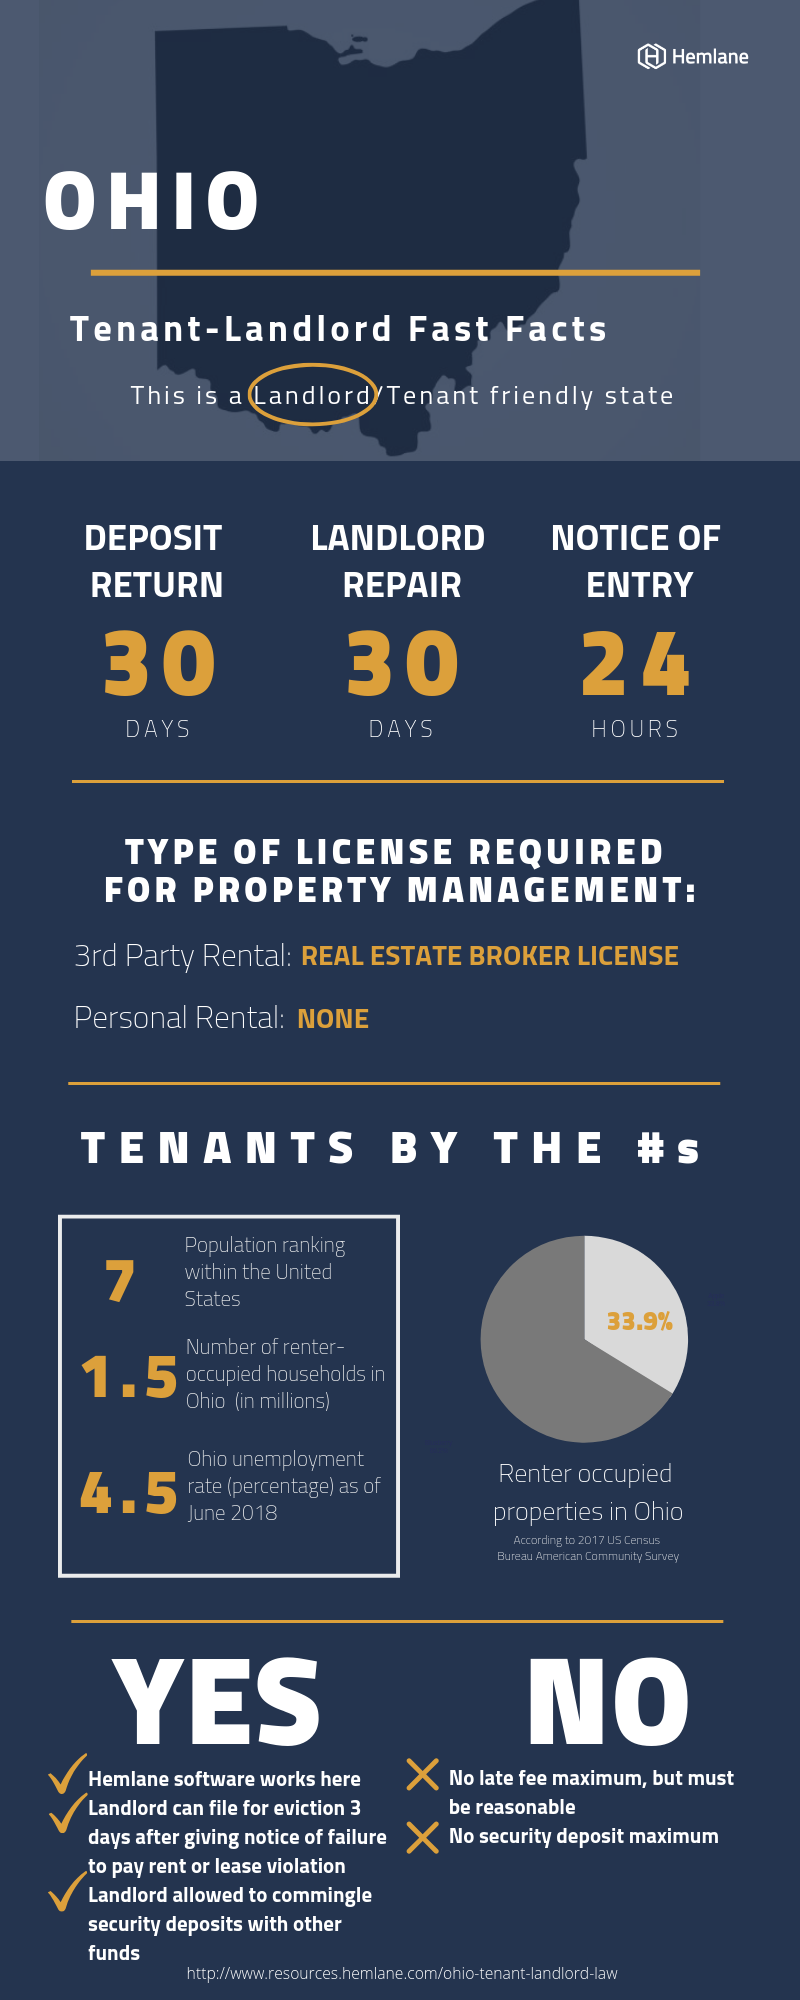 Ohio-Tenant-Landlord-Law-Fast-Facts